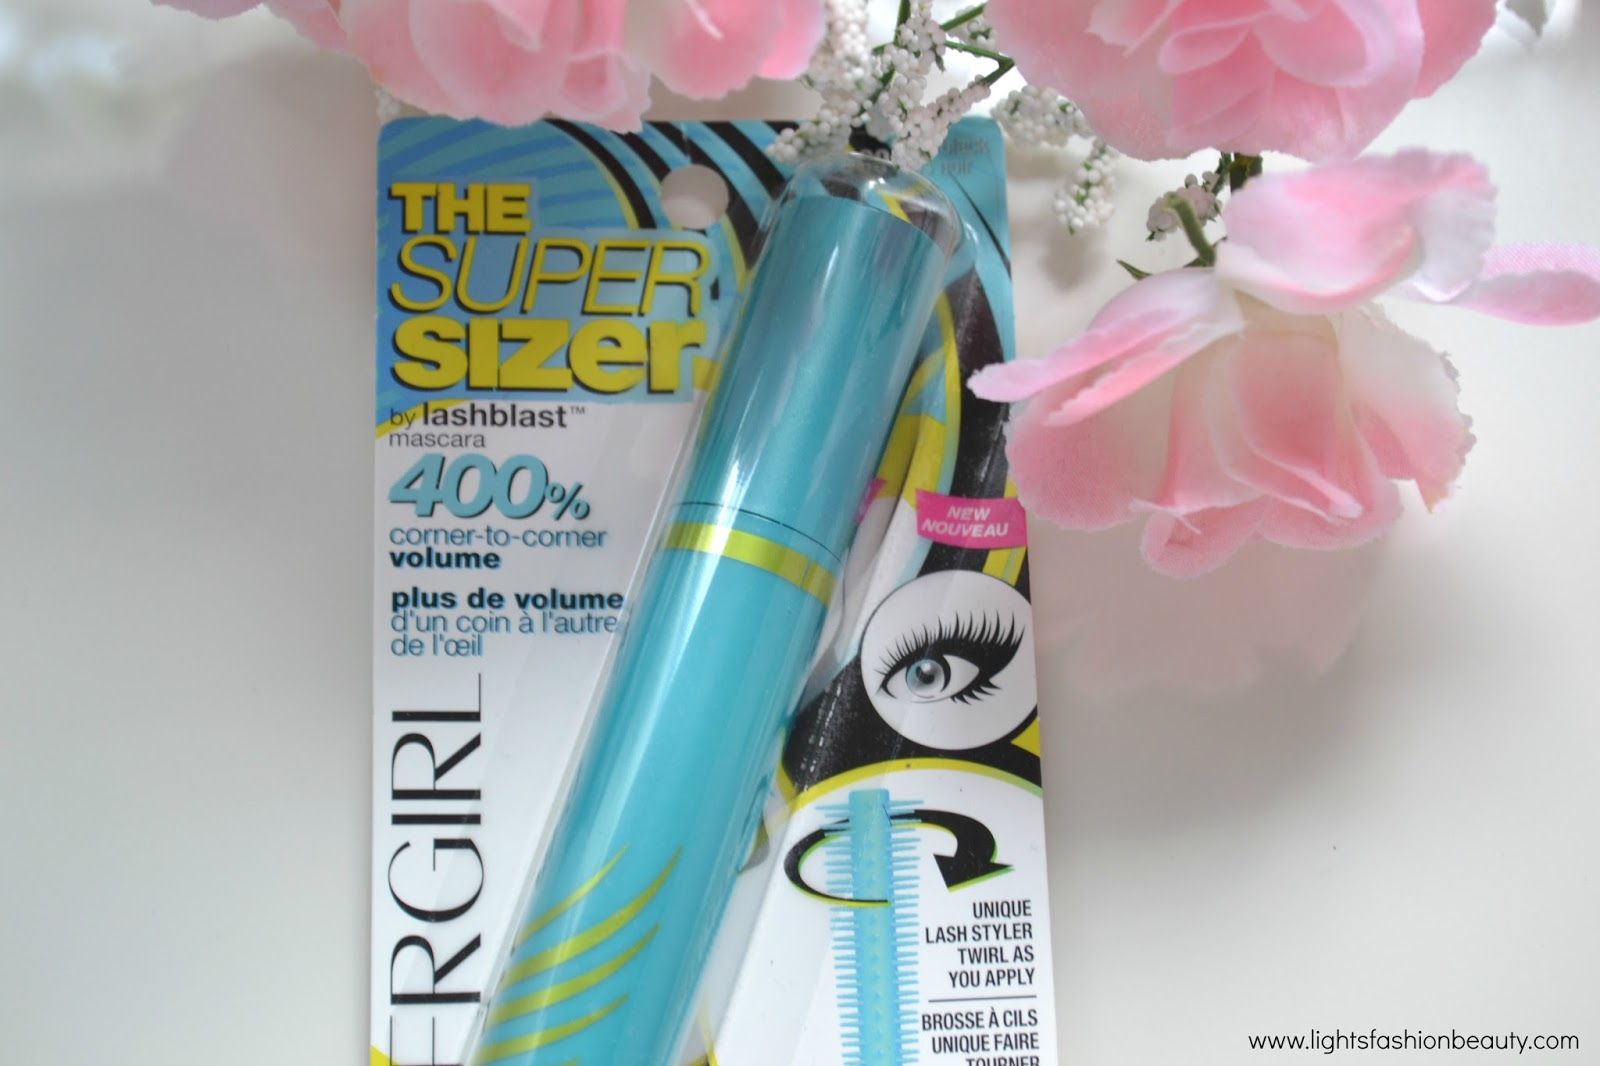 Covergirl The Super Sizer Mascara , new drugstore mascara, covergirl mascara, affordable mascaras, lightsfashionbeauty, canada beauty blog, montreal beauty blog